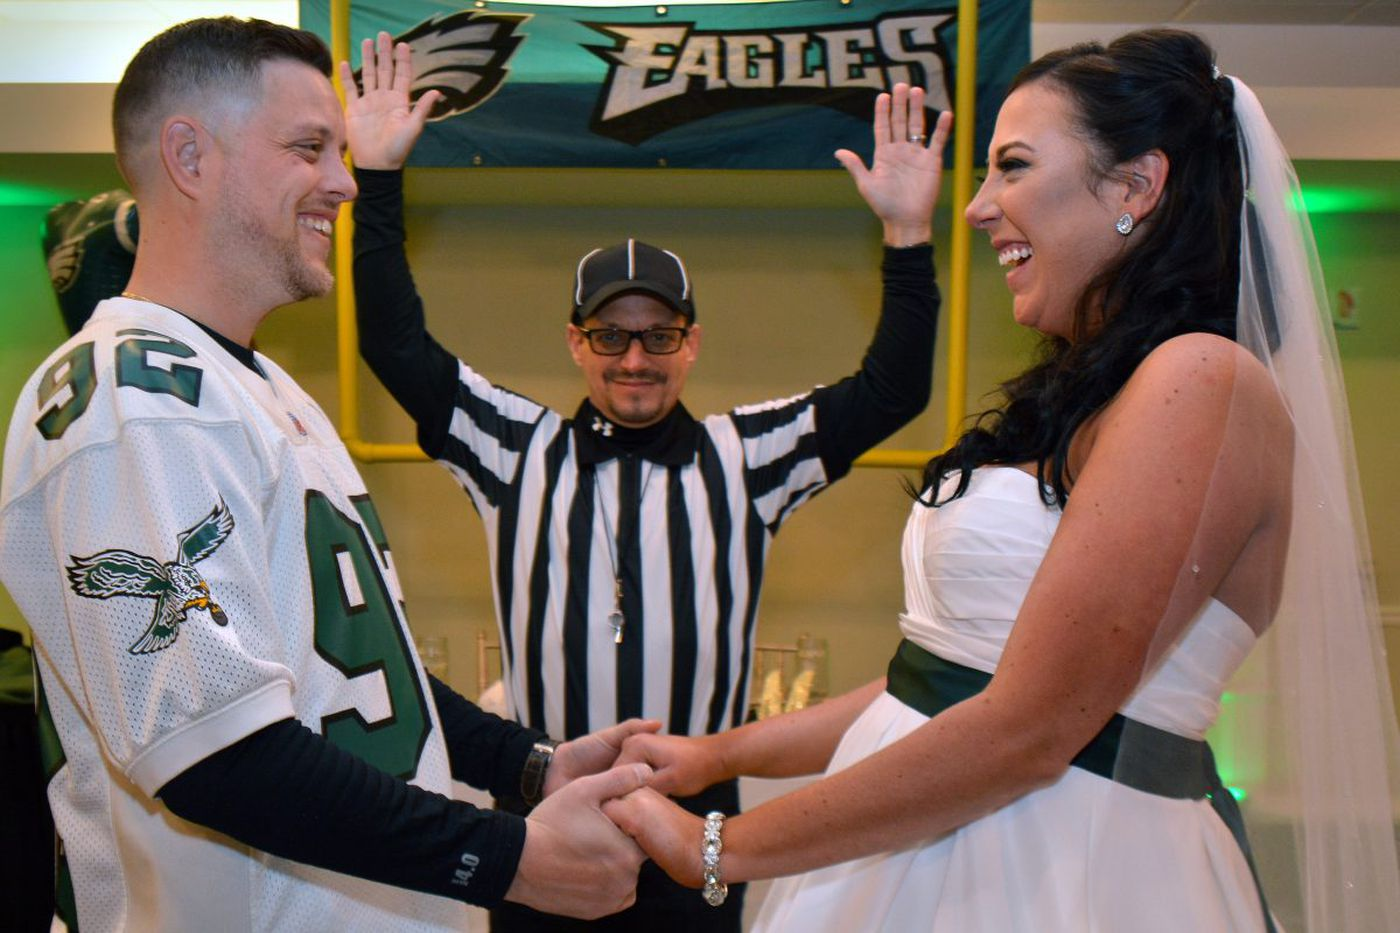 Philly fans threw an Eagles-themed wedding on Super Bowl Sunday | Jenice Armstrong